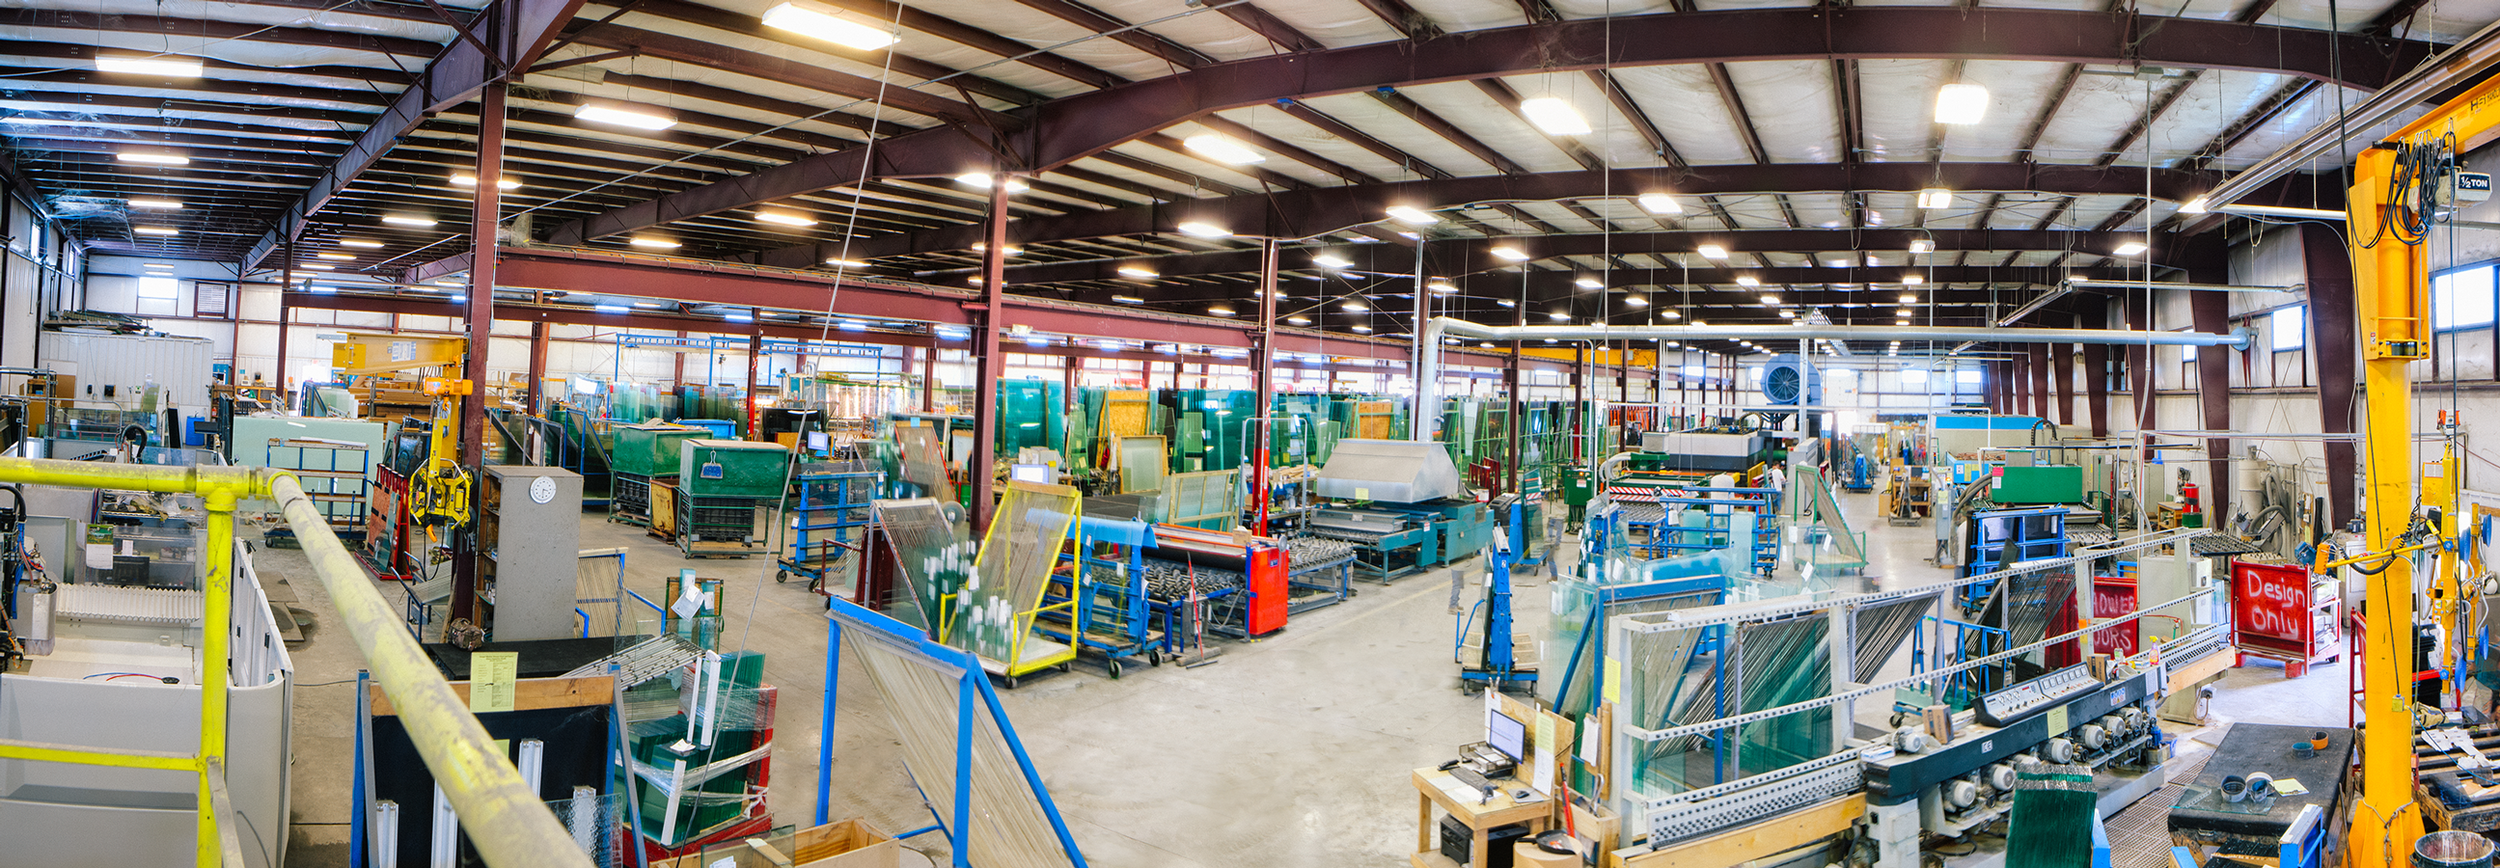 Production floor of Custom Glass Products in Weston, Wisconsin. Built by Wanta & Son, Inc.